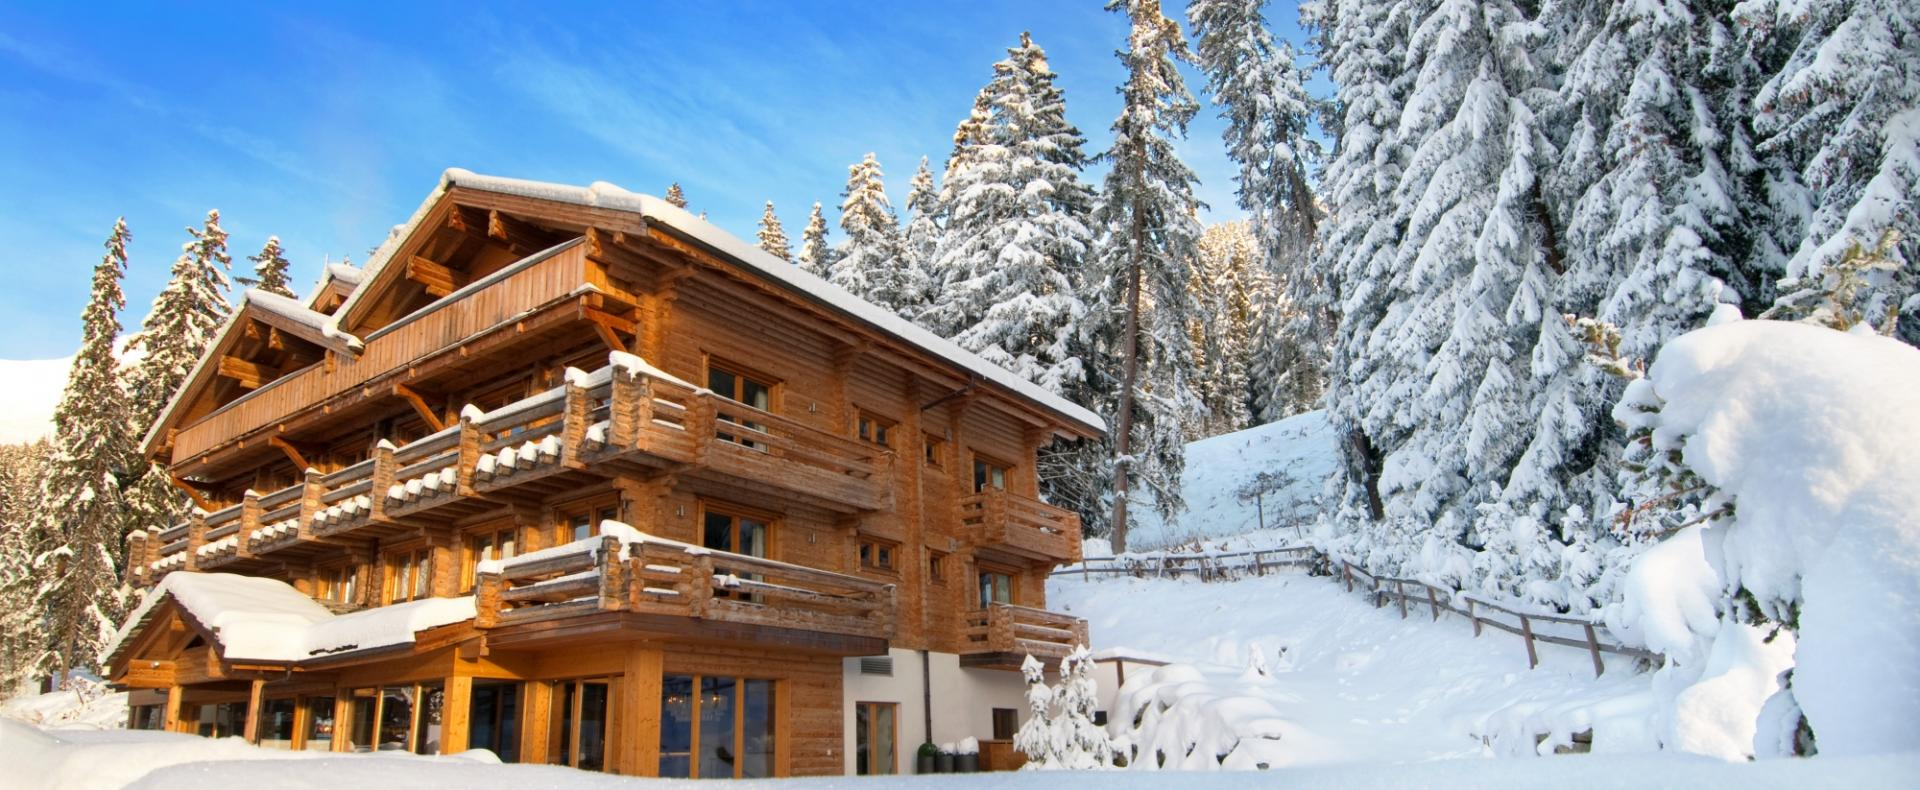 Exterior-The-Lodge-Verbier-Ultimate-Luxury-Chalets-UltraVilla